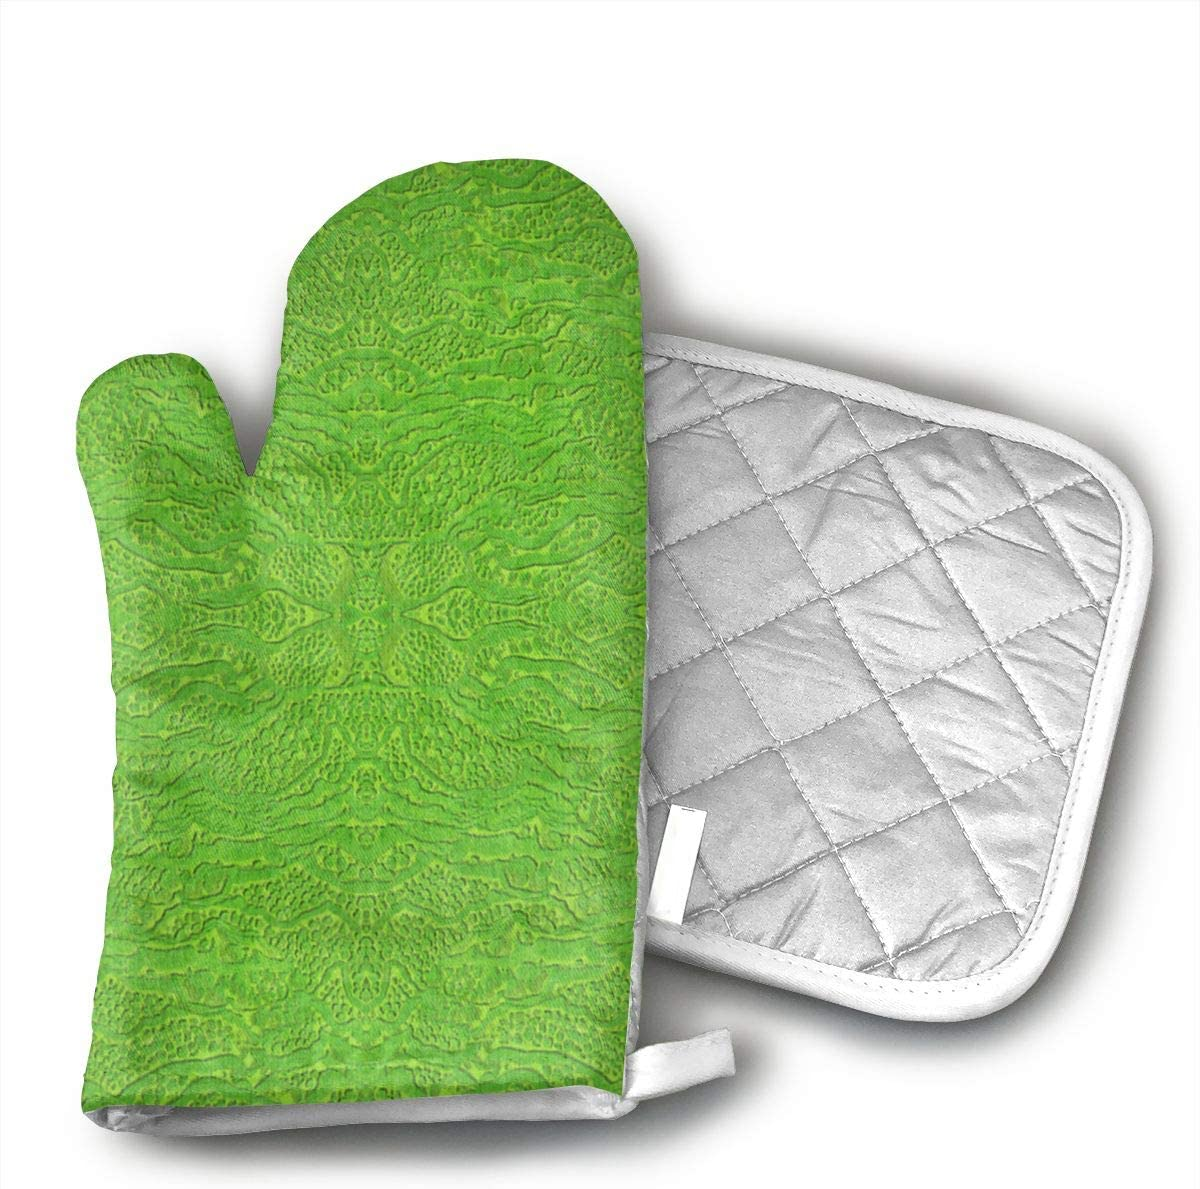 Teuwia Encrusted Lime Green Fabric (5664) Oven Mitts and Pot Holders Baking Oven Gloves Hot Pads Set Heat Resistant for Finger Hand Wrist Protection